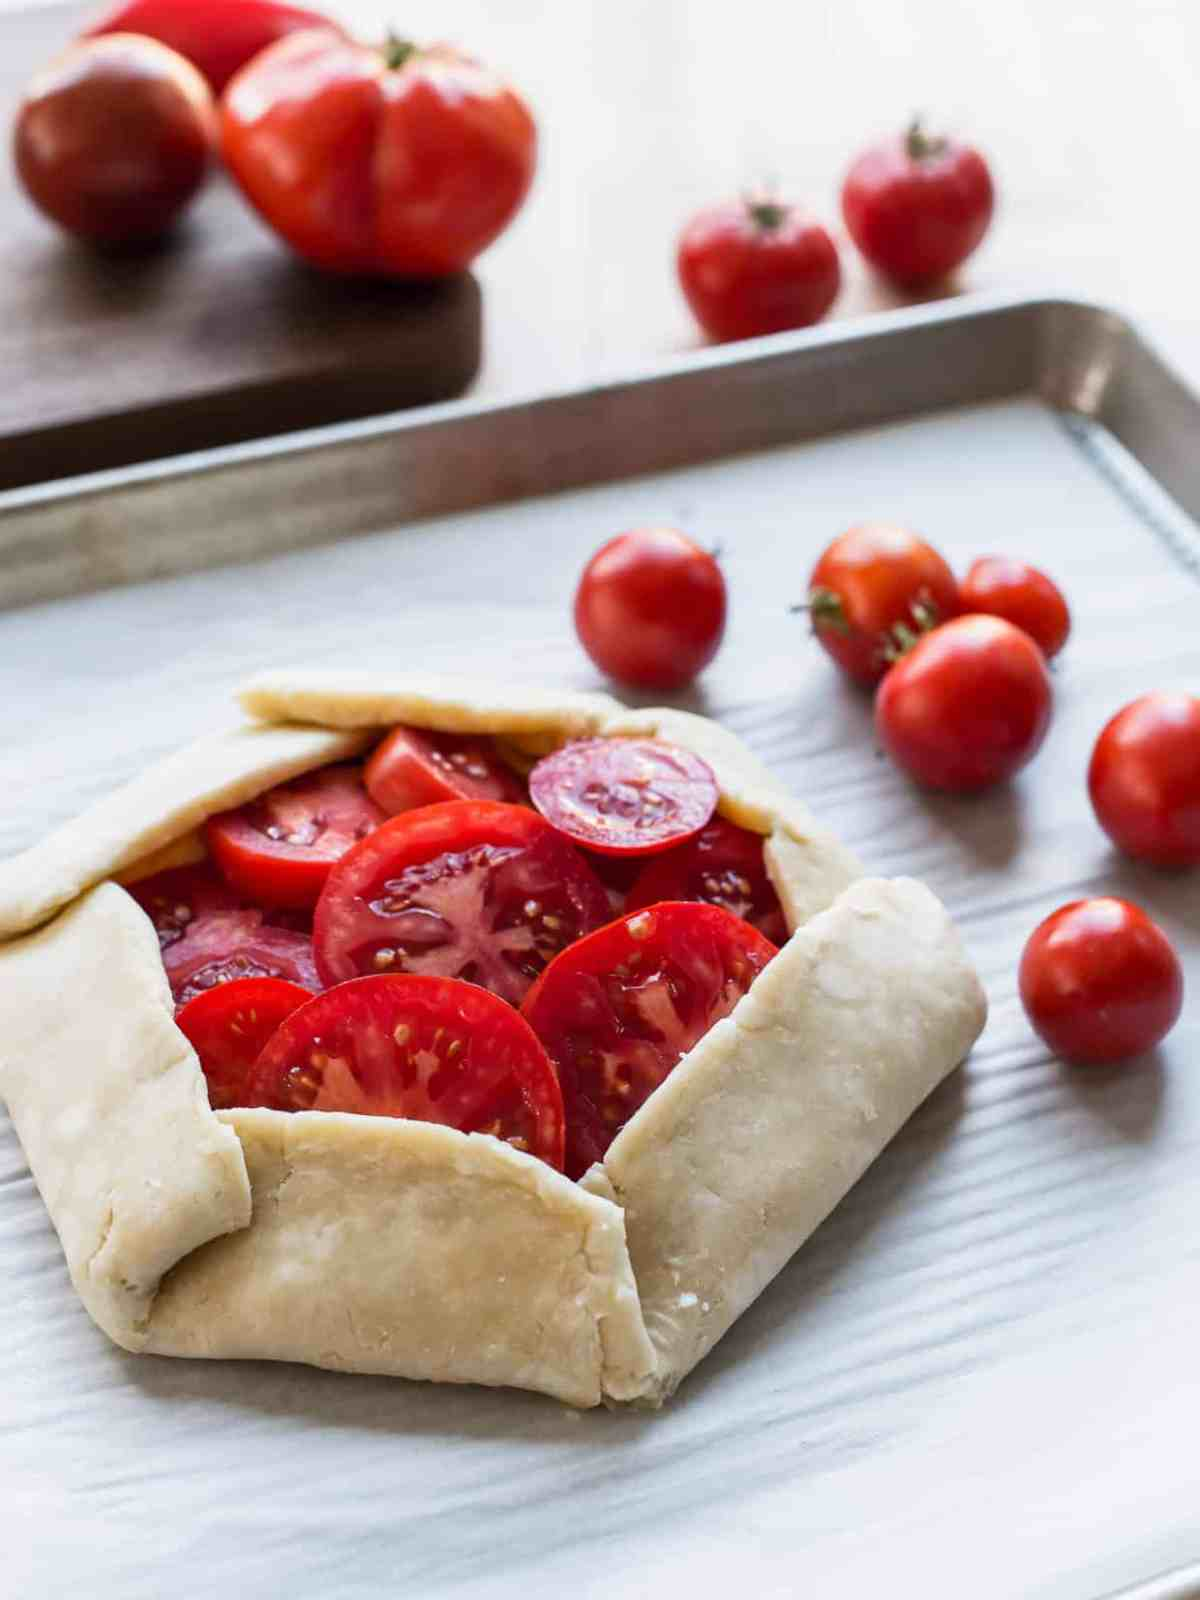 Tomato Ricotta Galette - this rustic pie recipe marries the flavors of a pizza with a flakey crust and juicy heirloom tomatoes.